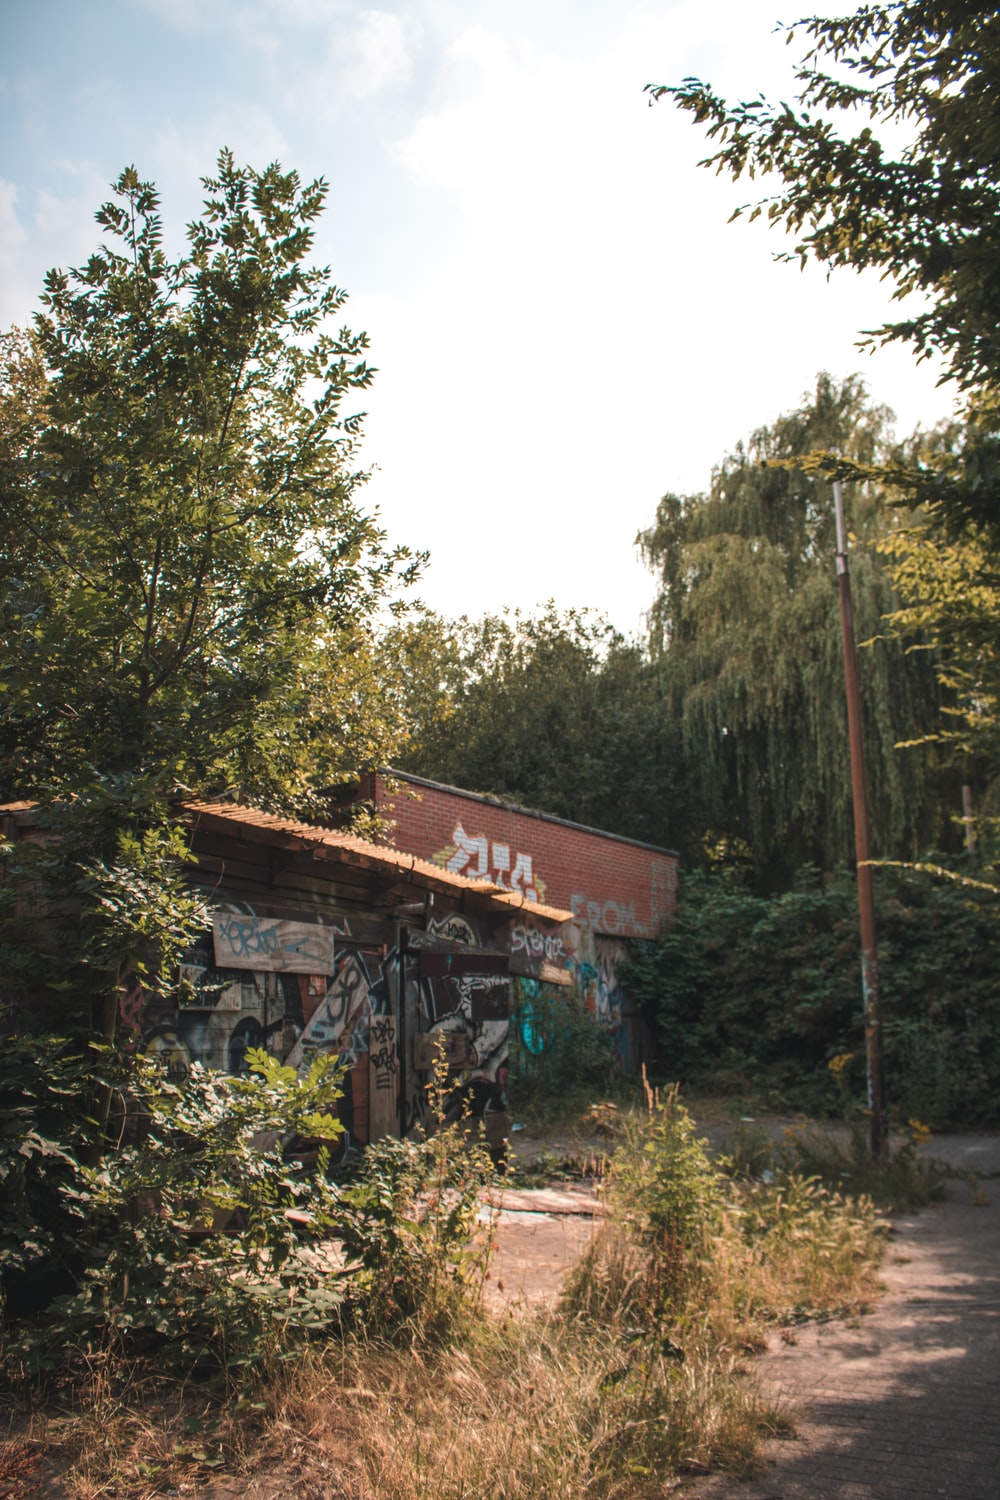 abandoned building near trees during day